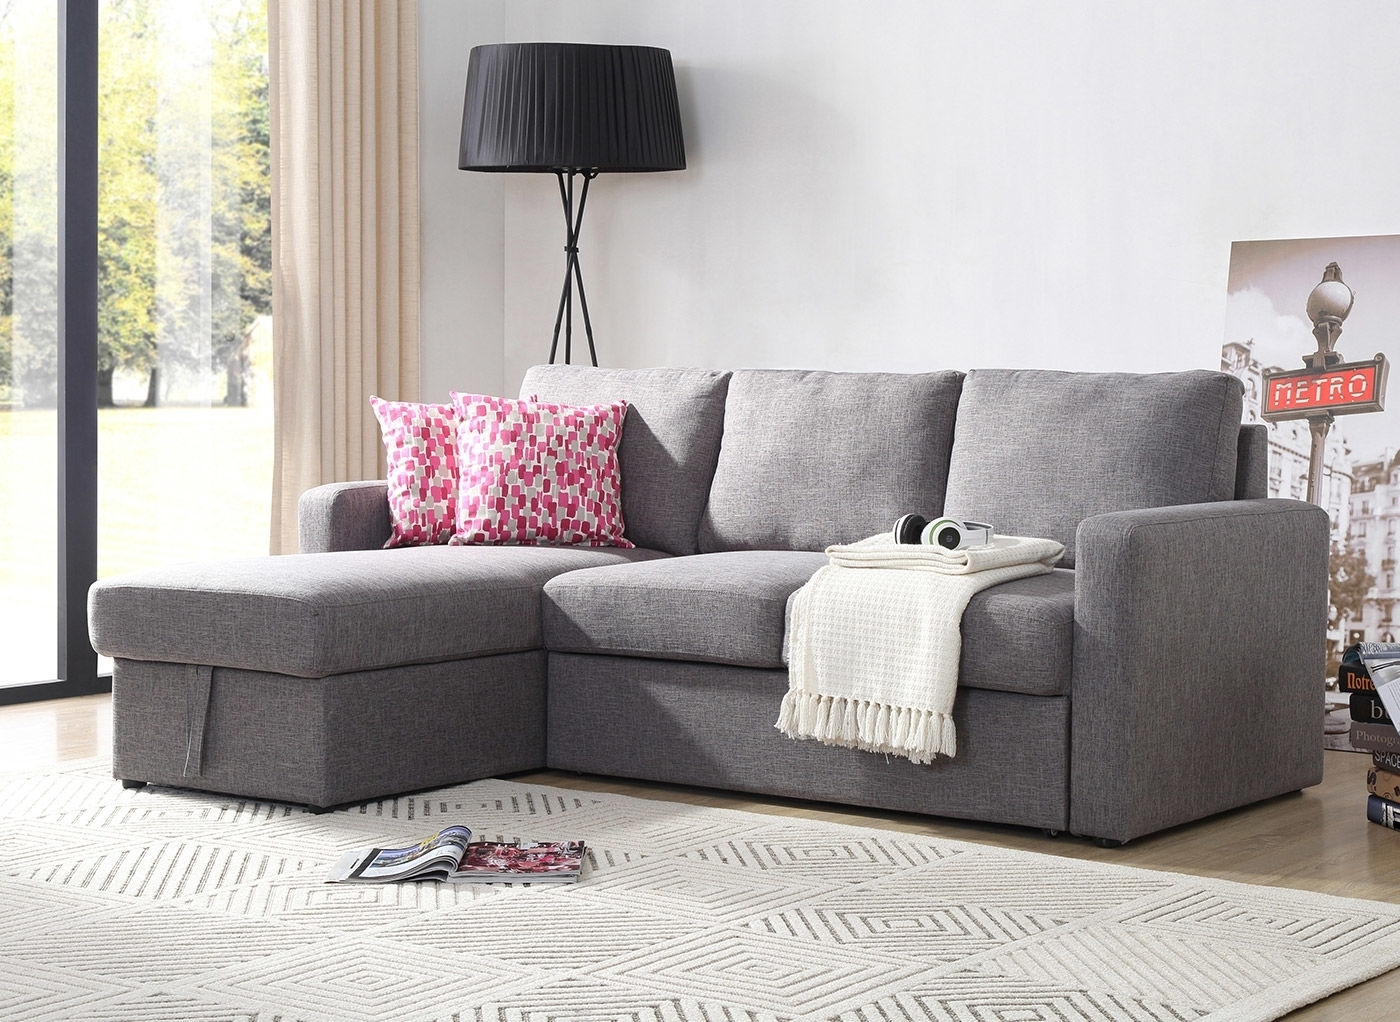 Bad Boy Furniture Sectional Sofas • Sectional Sofa Inside Sectional Sofas At Bad Boy (View 2 of 15)